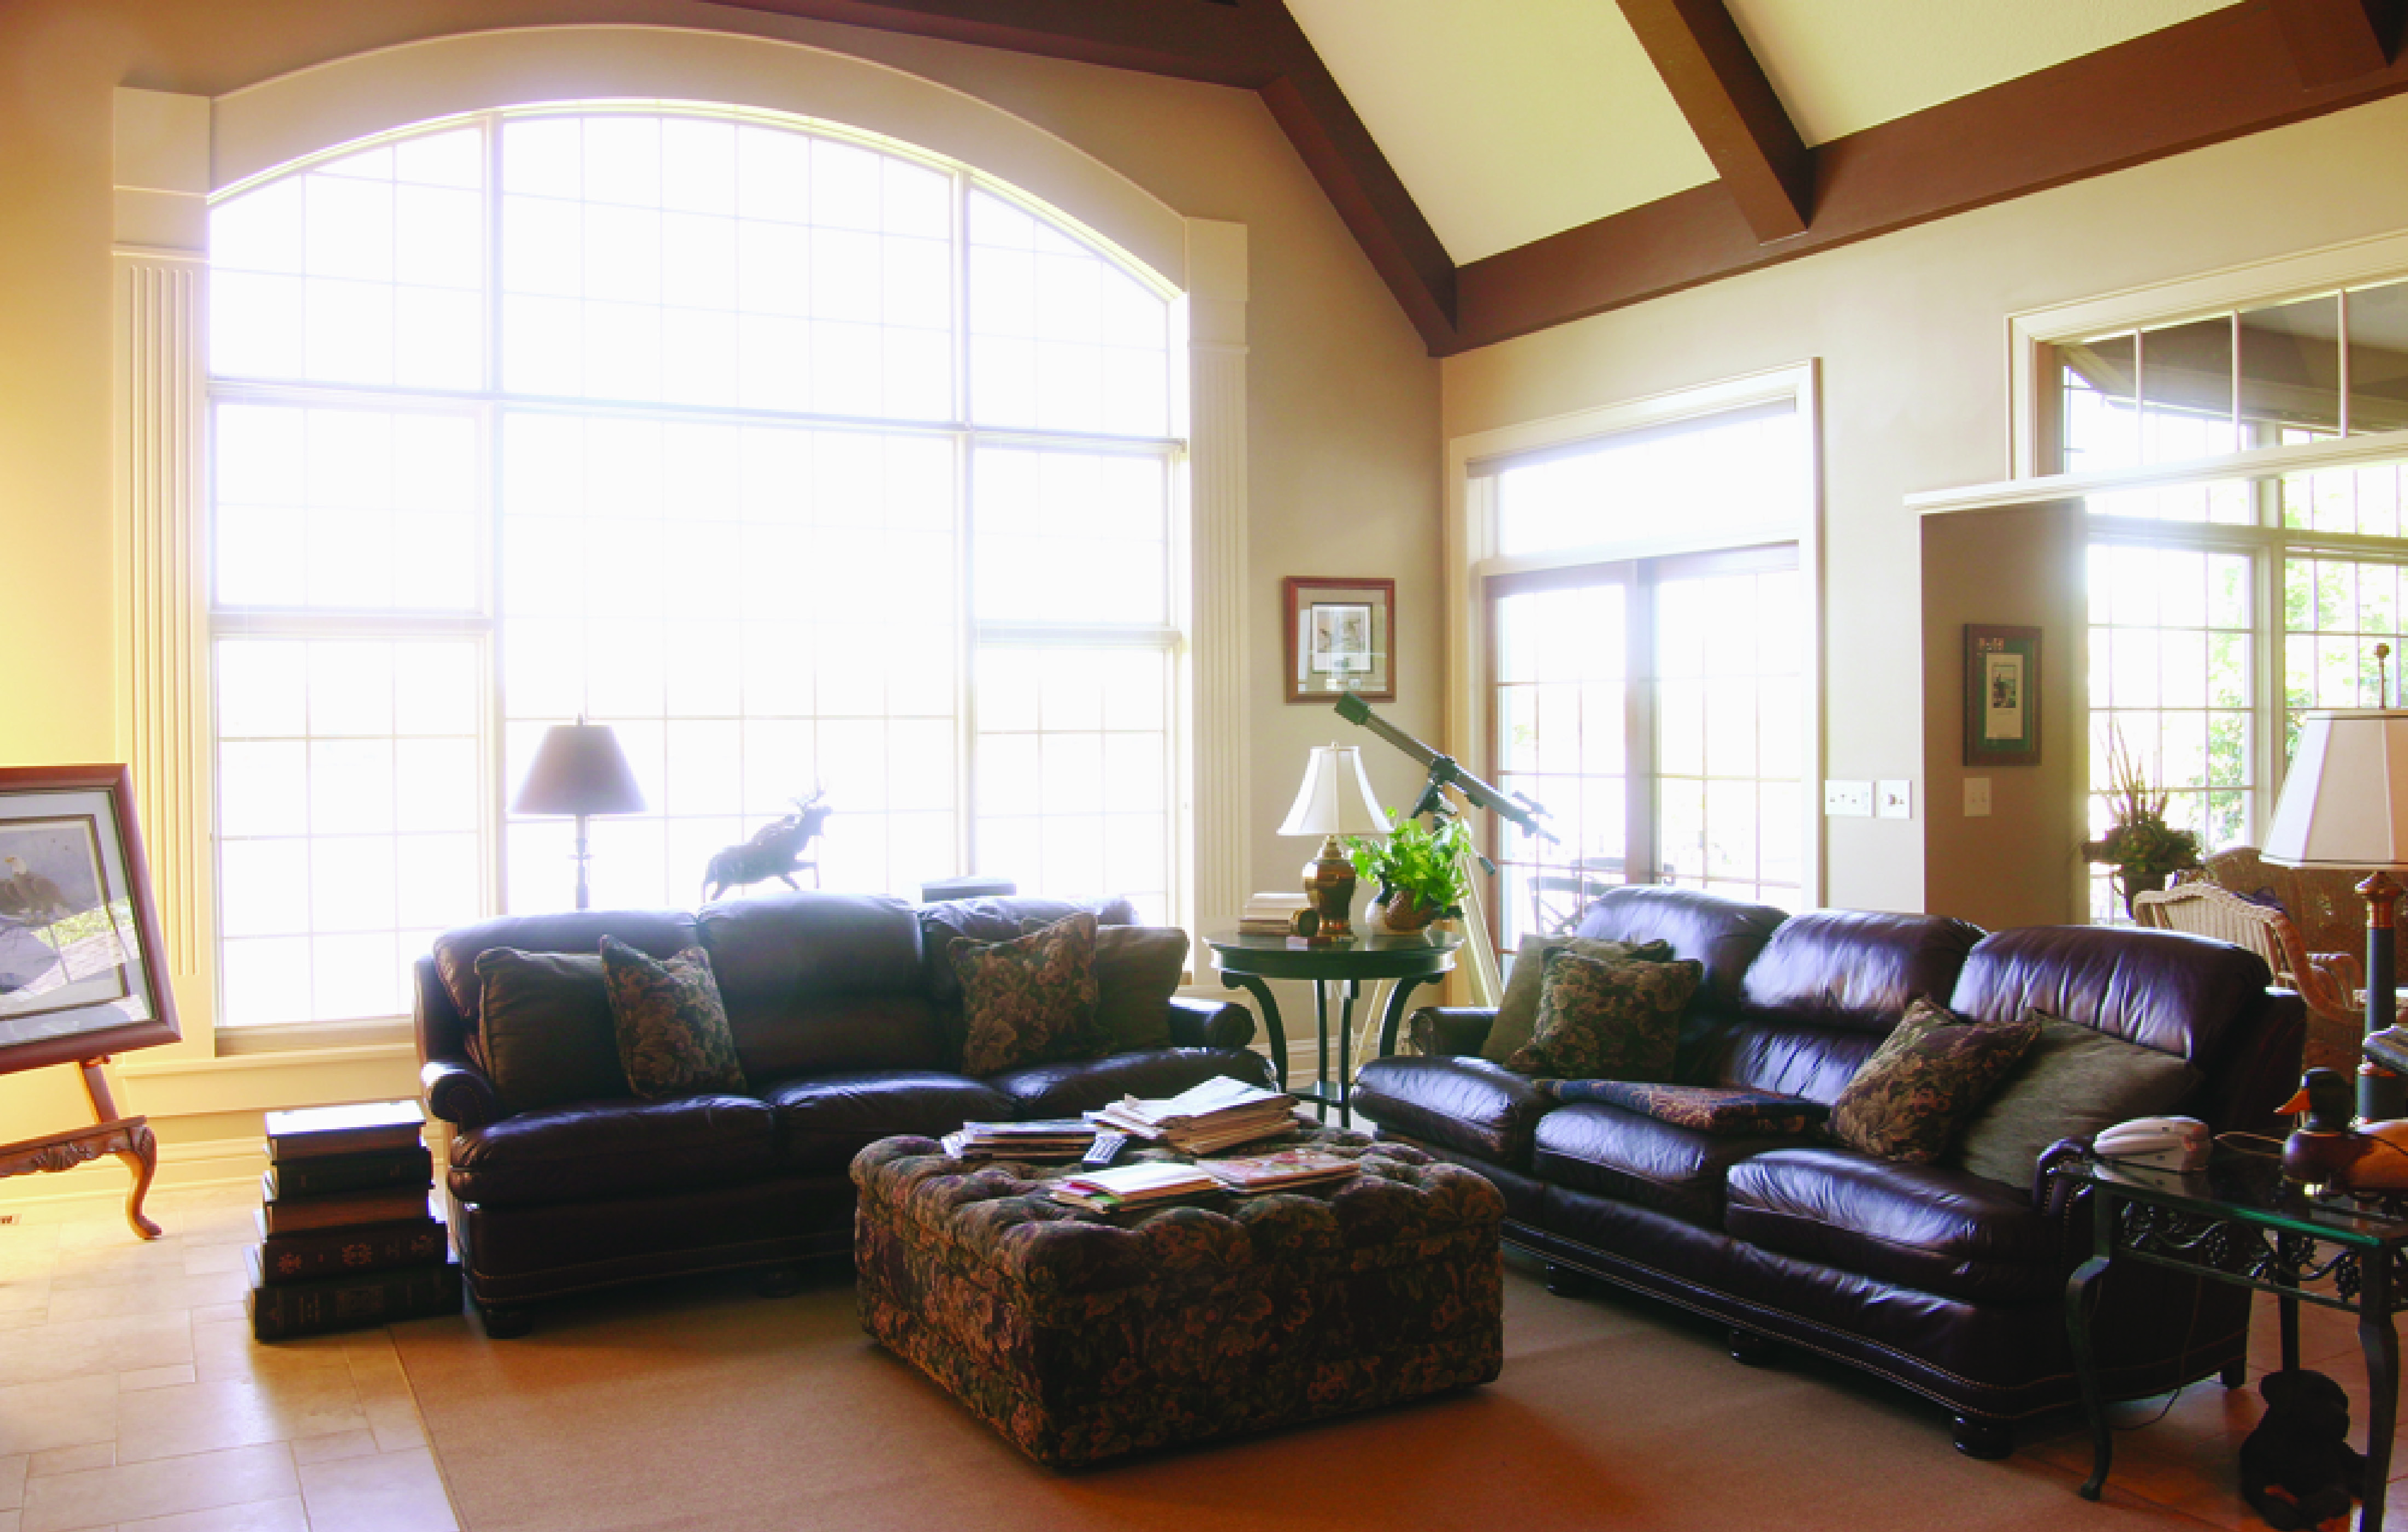 Household Furnishings buyers and customers. Reach this lucrative ...